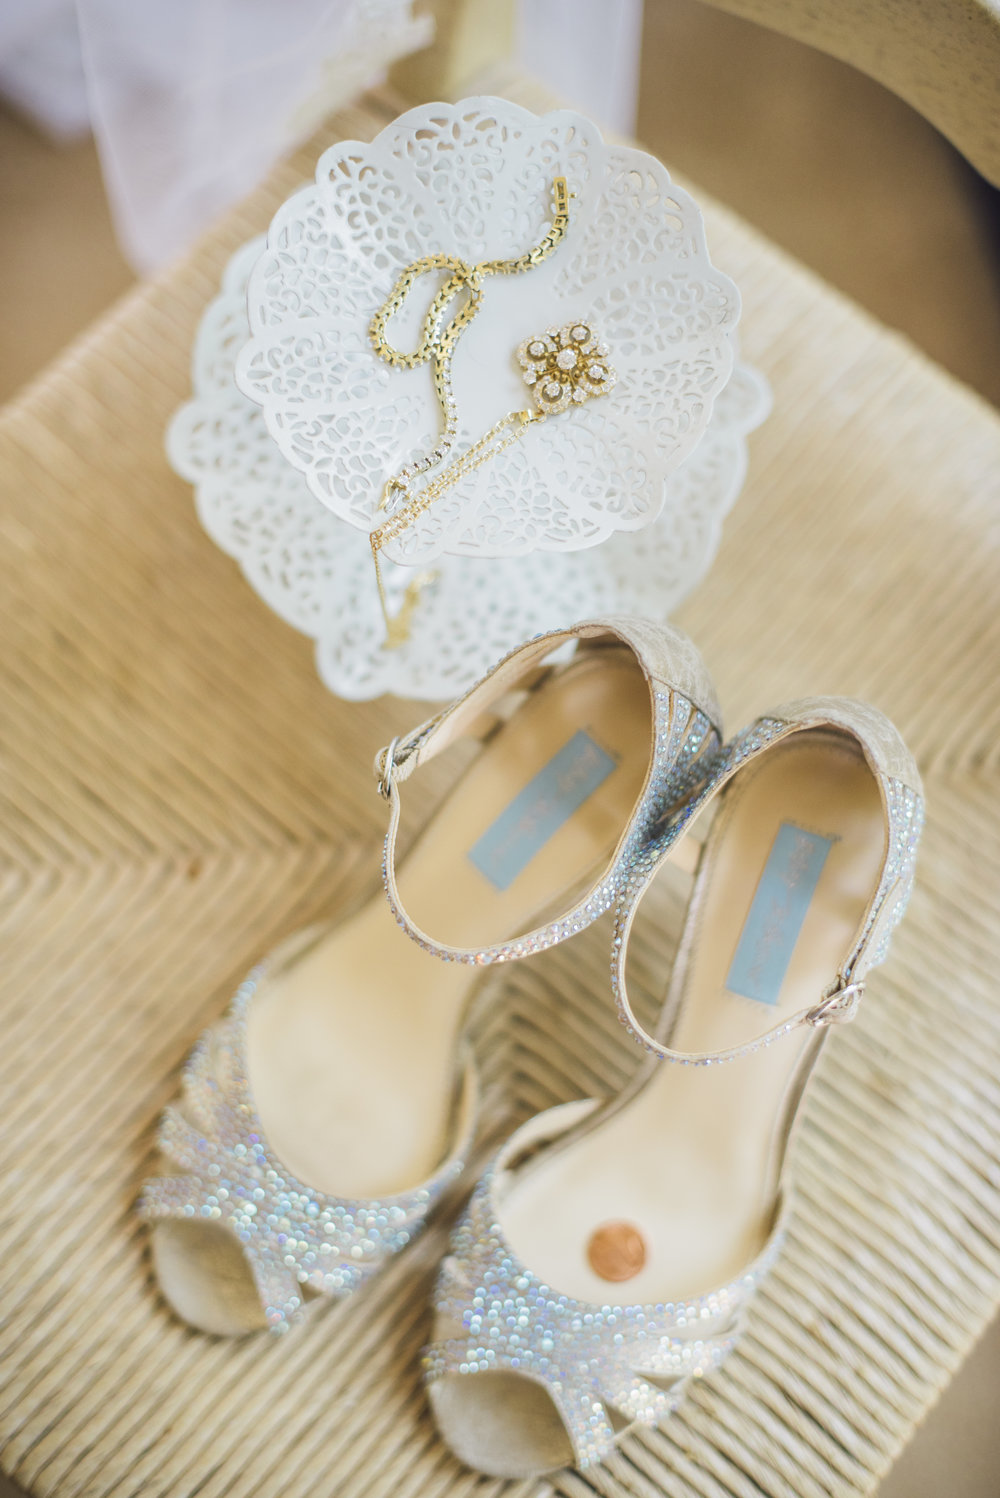 www.santabarbarawedding.com | Unitarian Society | Cara Robbins | Percy Sales Events | Bride's Shoes